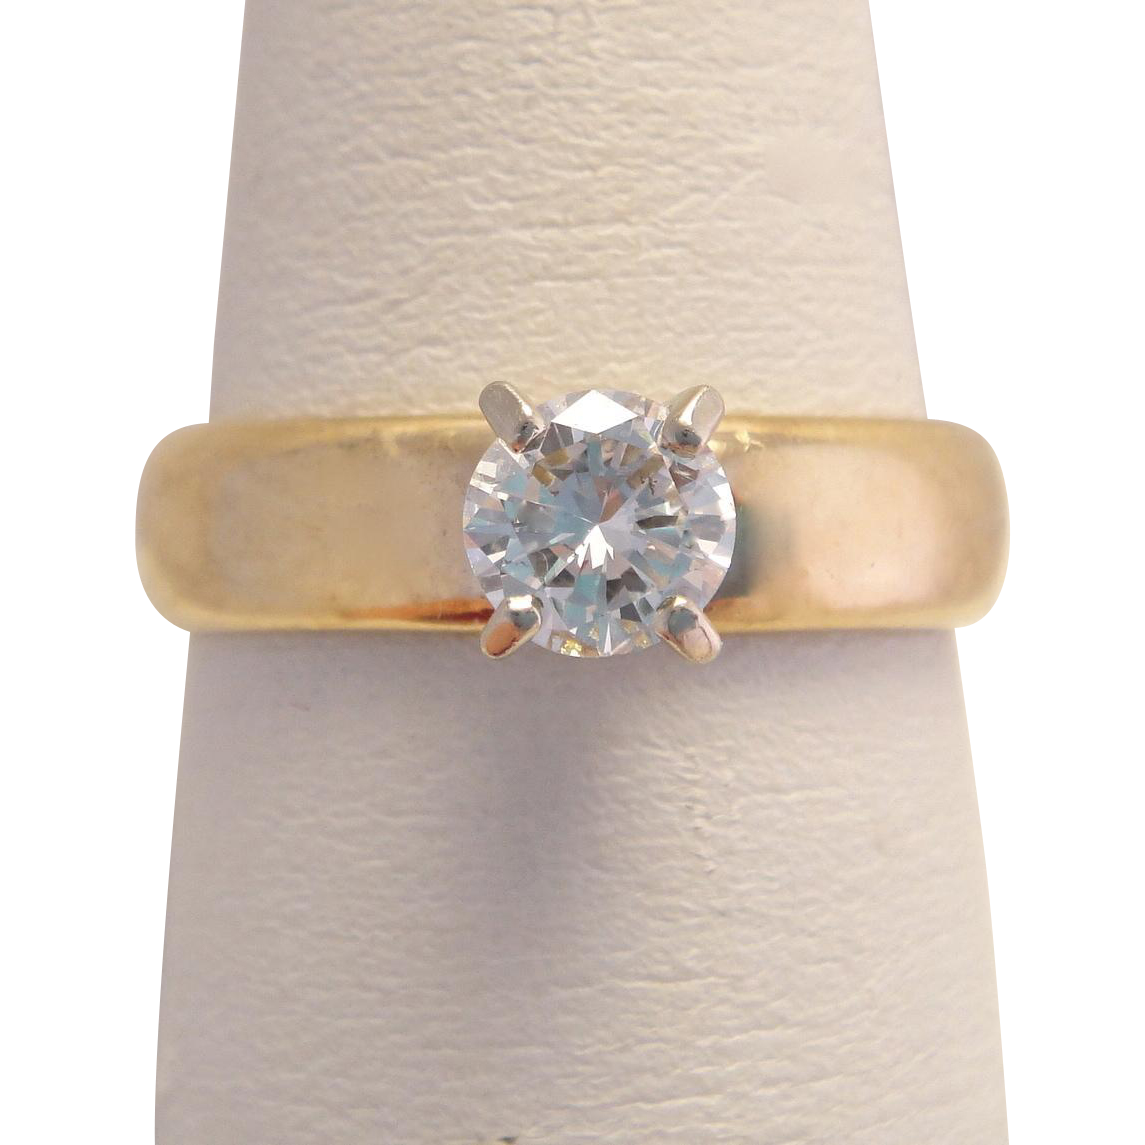 Vintage Gold Custom .63 Carat Solitaire Diamond Ring